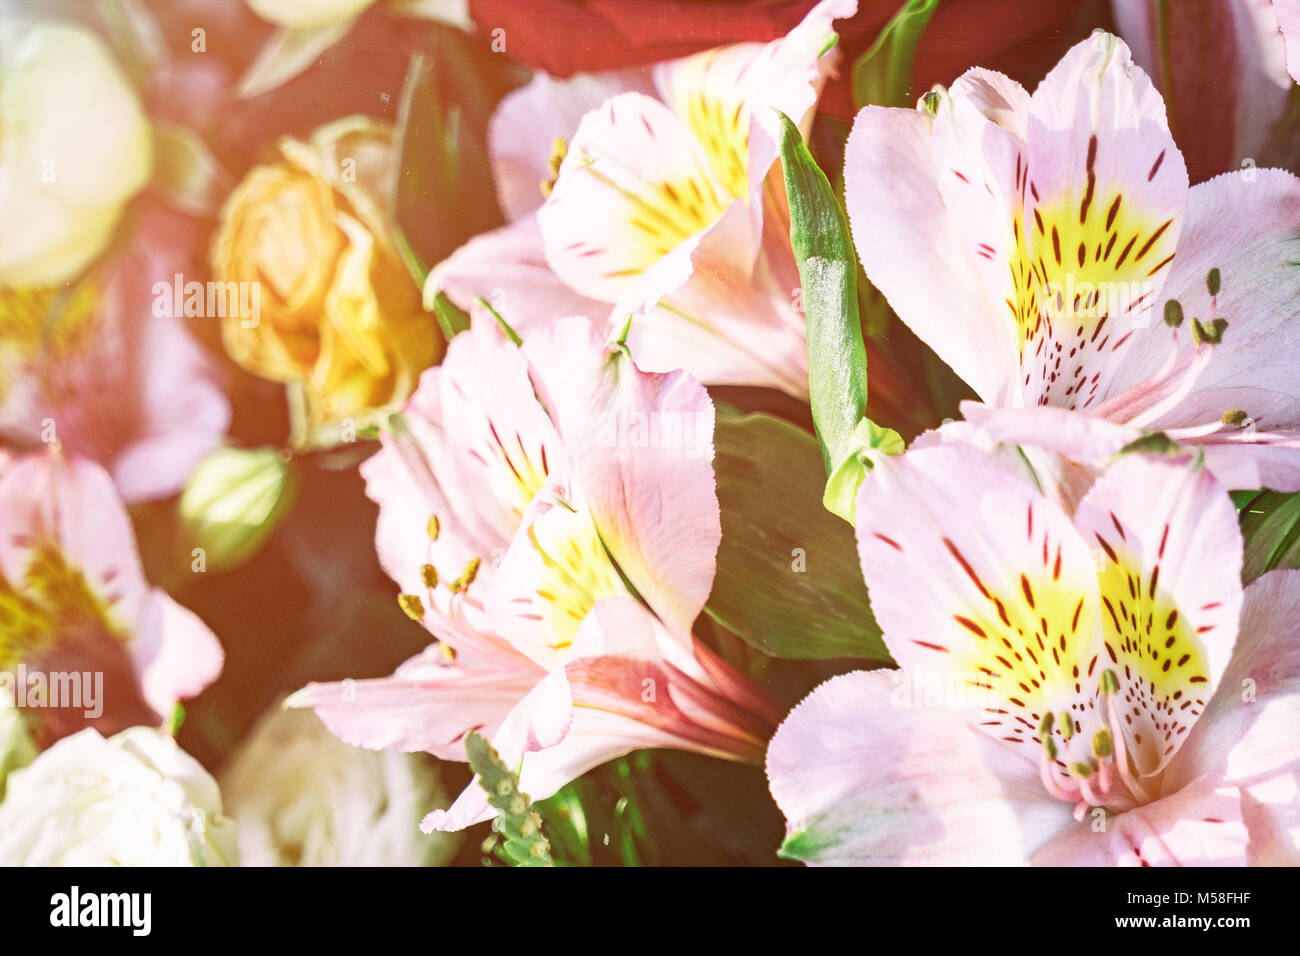 Flowers beautiful pink lilies in a bouquet stock photo 175364827 flowers beautiful pink lilies in a bouquet izmirmasajfo